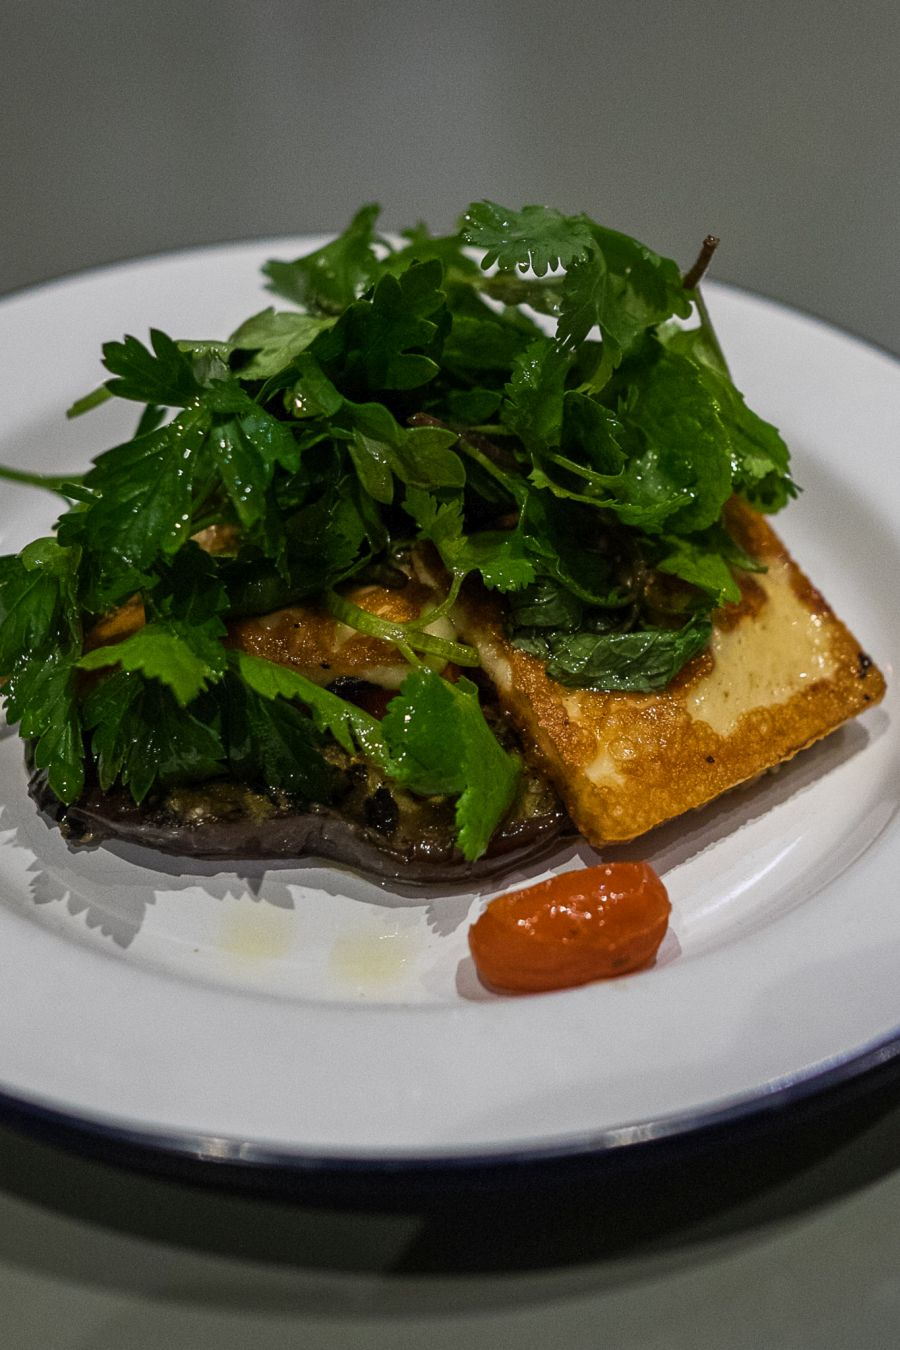 Marinated eggplant, grilled haloumi, tomato and herb salad (AU$16)